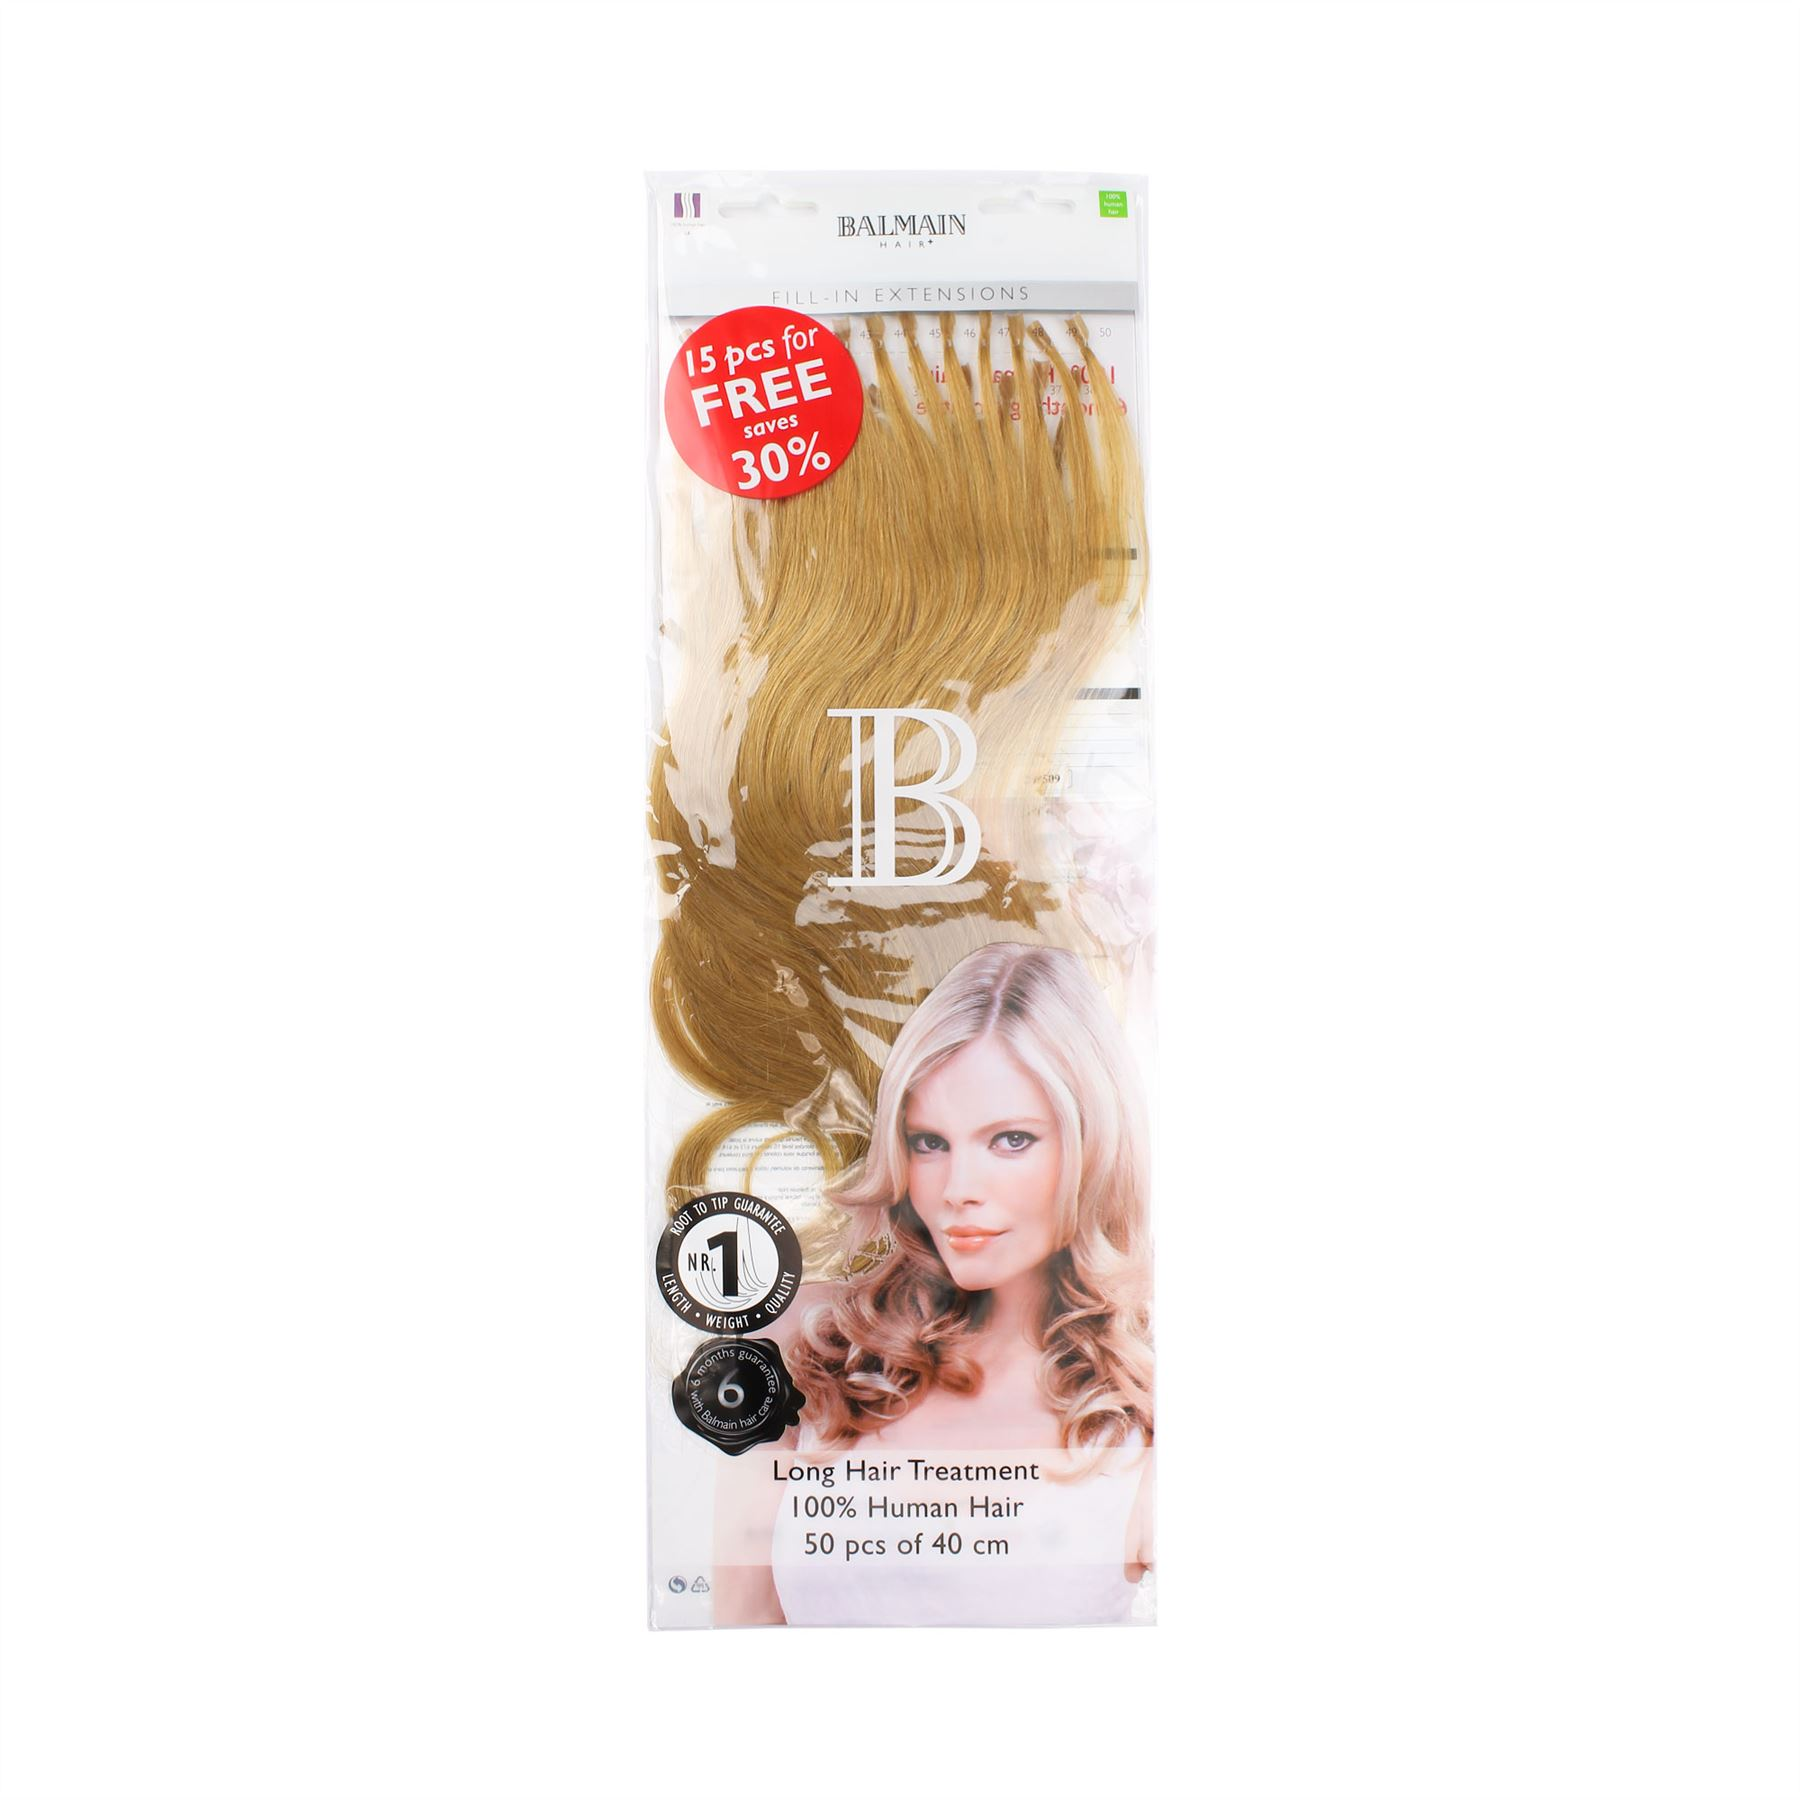 Balmain Hair Extensions Ebay Remy Hair Review